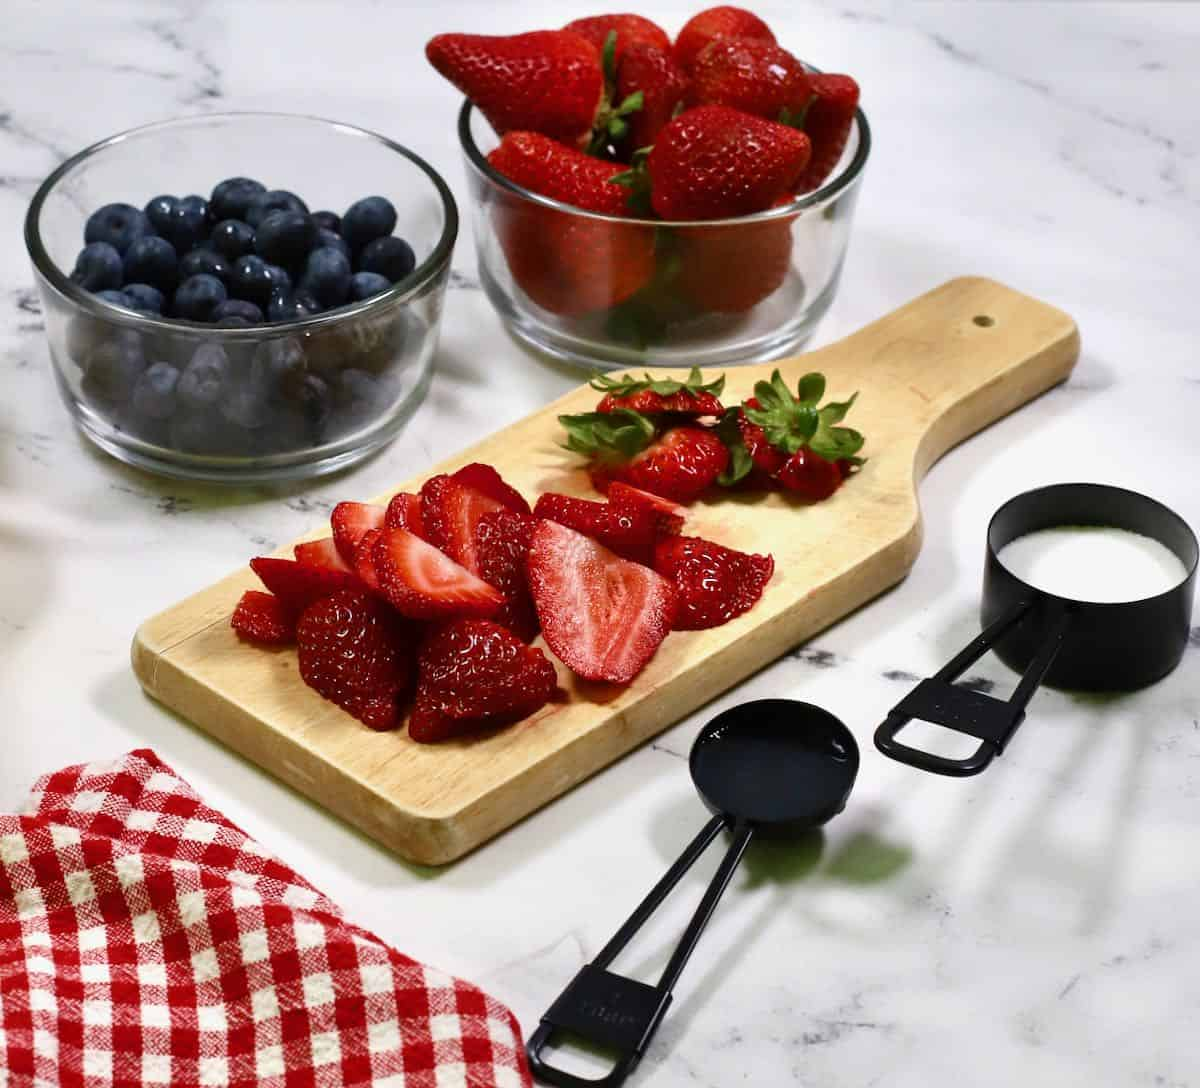 Fresh sliced strawberries and blueberries on a wooden cutting board.